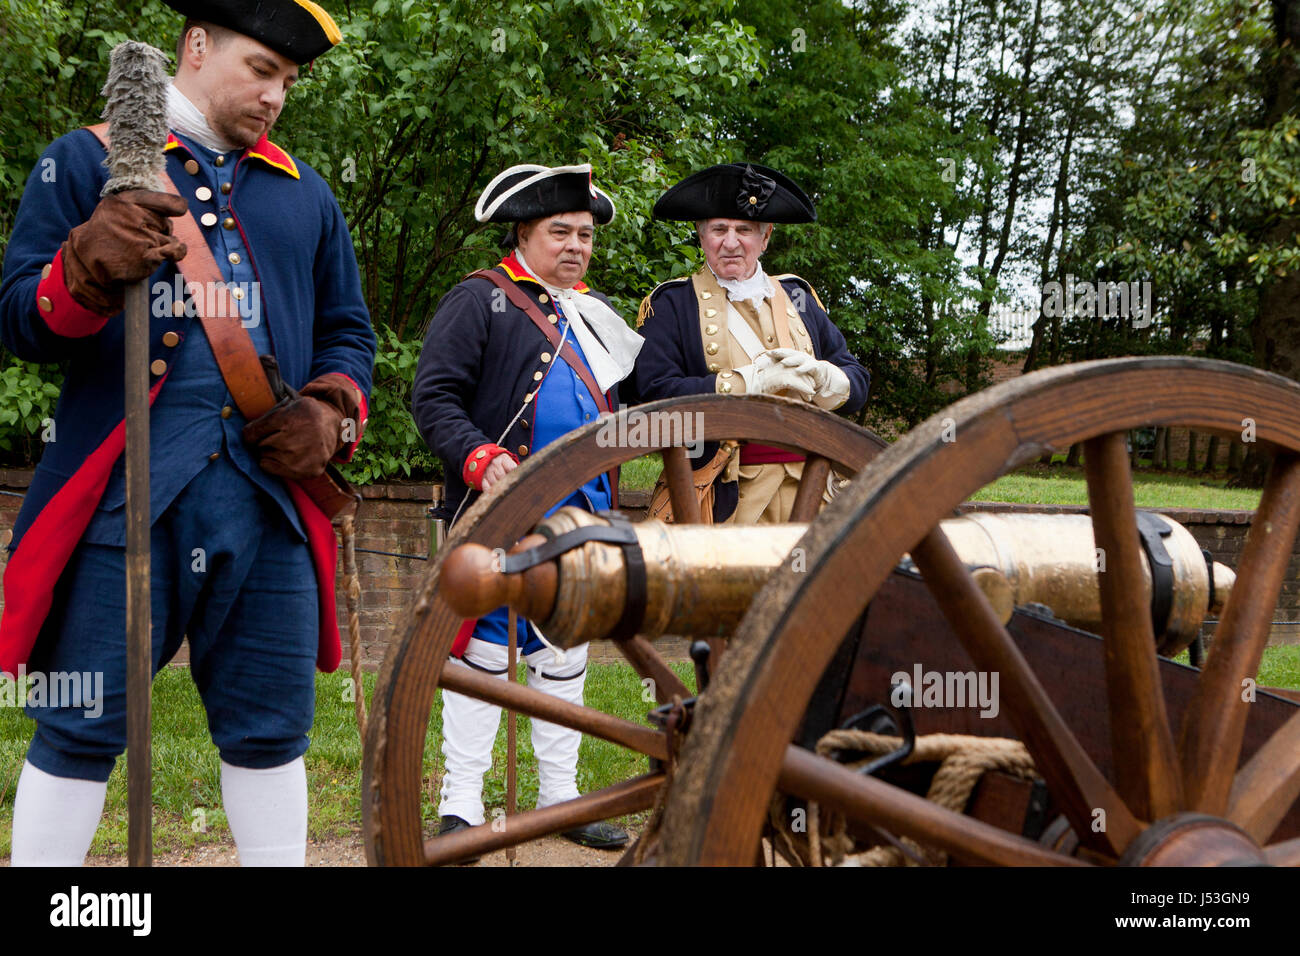 American cannon artillery crew in the American Revolutionary